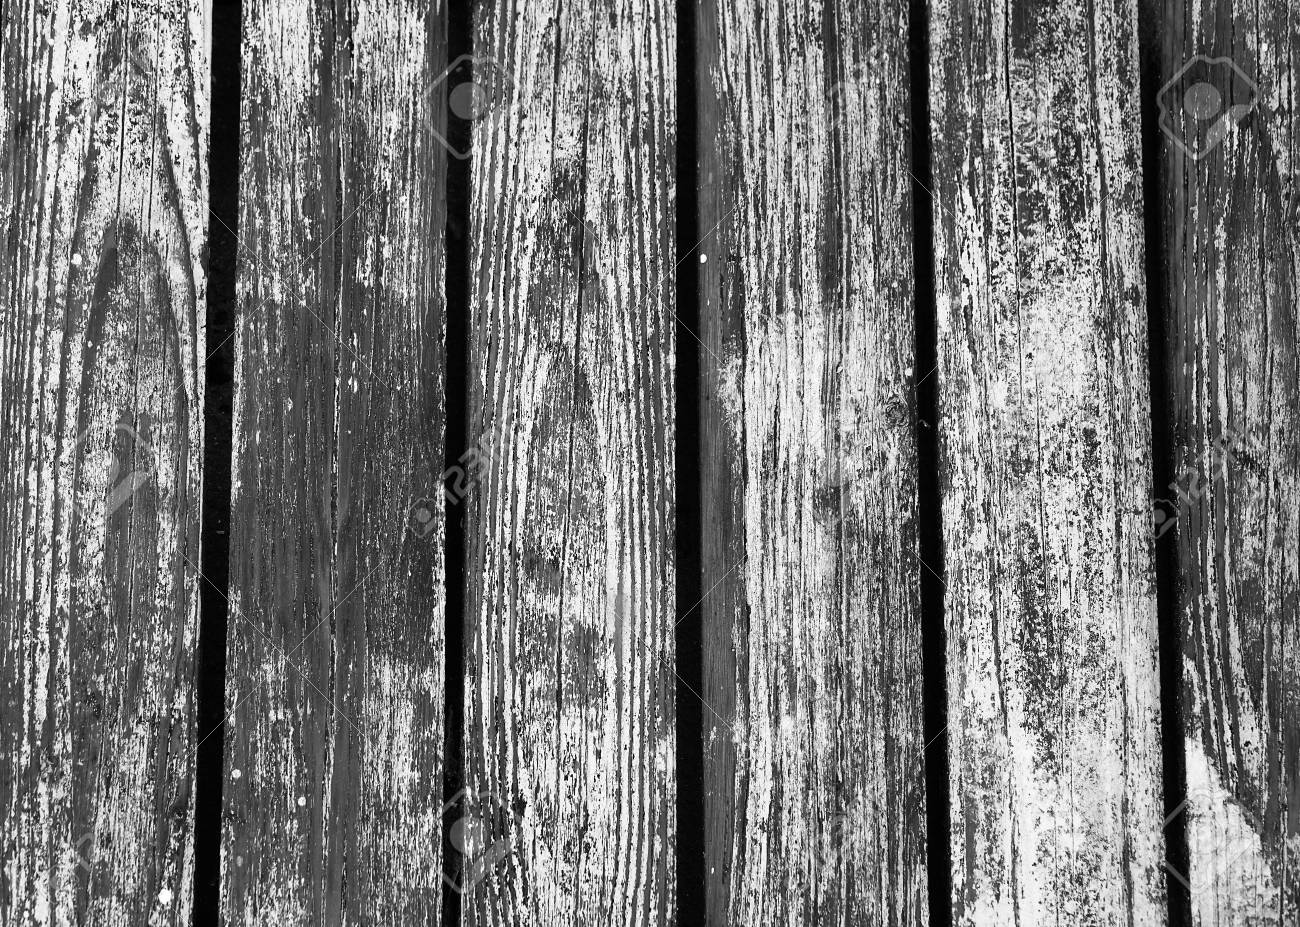 Old wooden slats with peeling paint.Background texture. - 79522160